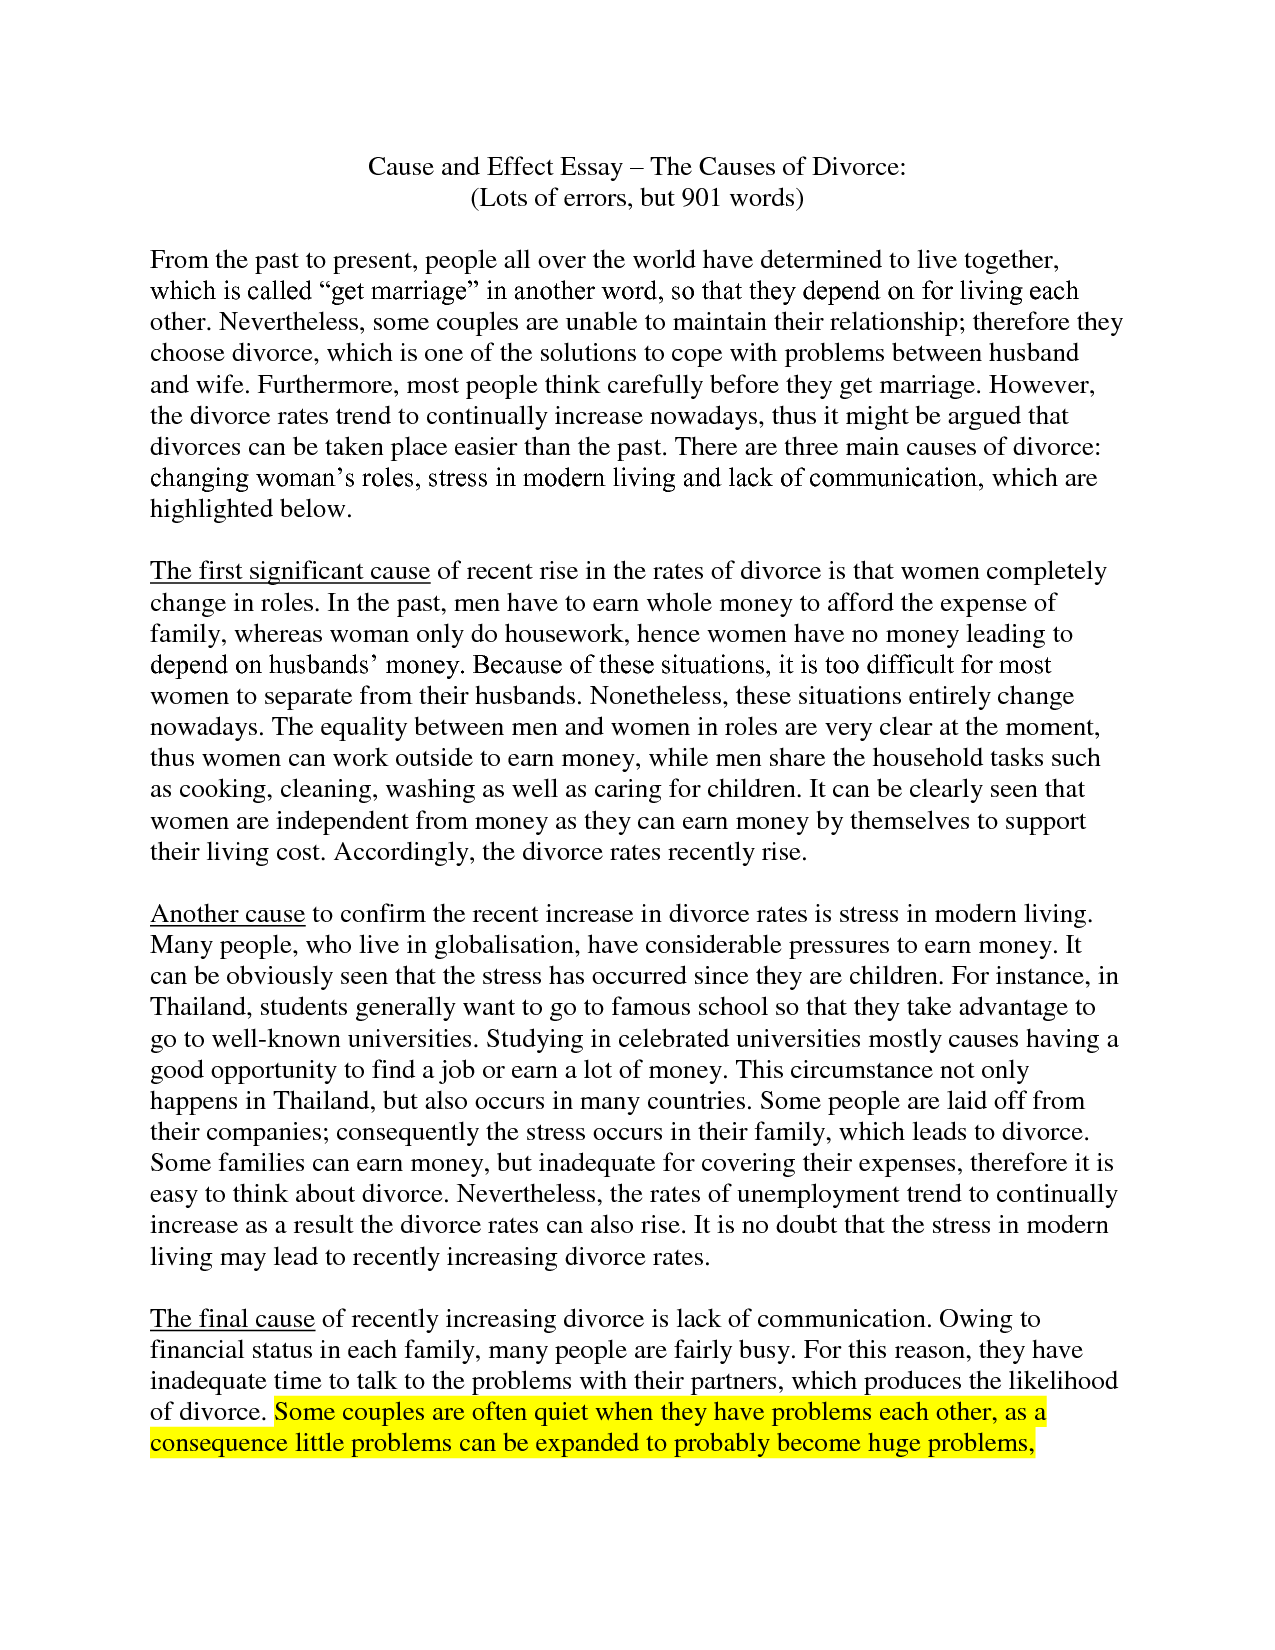 007 Essay Example How Do You Write Cause And Effect Writing Ppt V5kyg Examples Tips For Pdf Outline On Divorce Steps To Help With Powerpoint Surprising Expository Topics Full